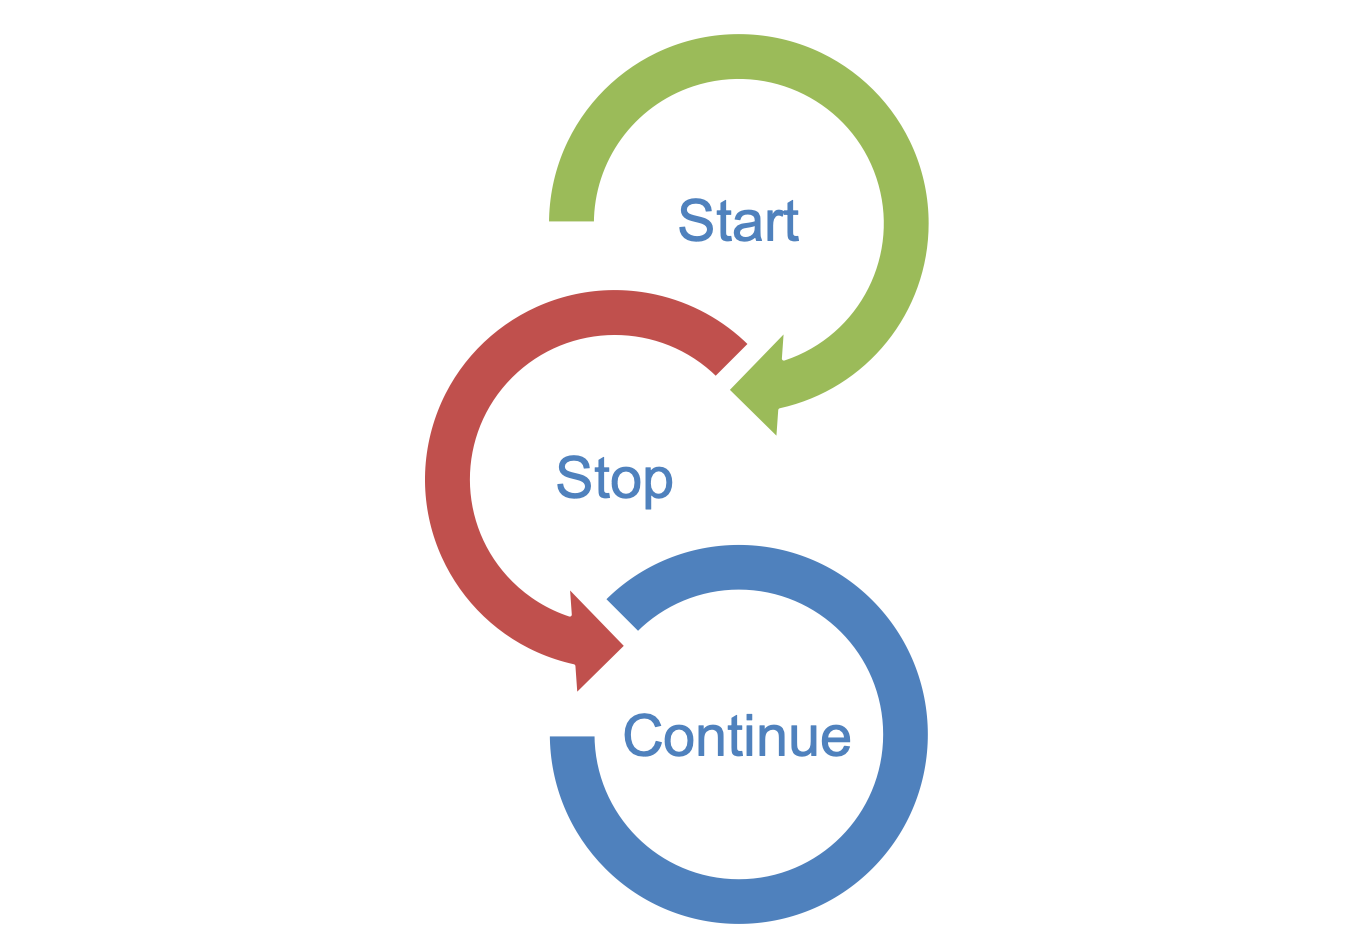 Start Stop and Continue image